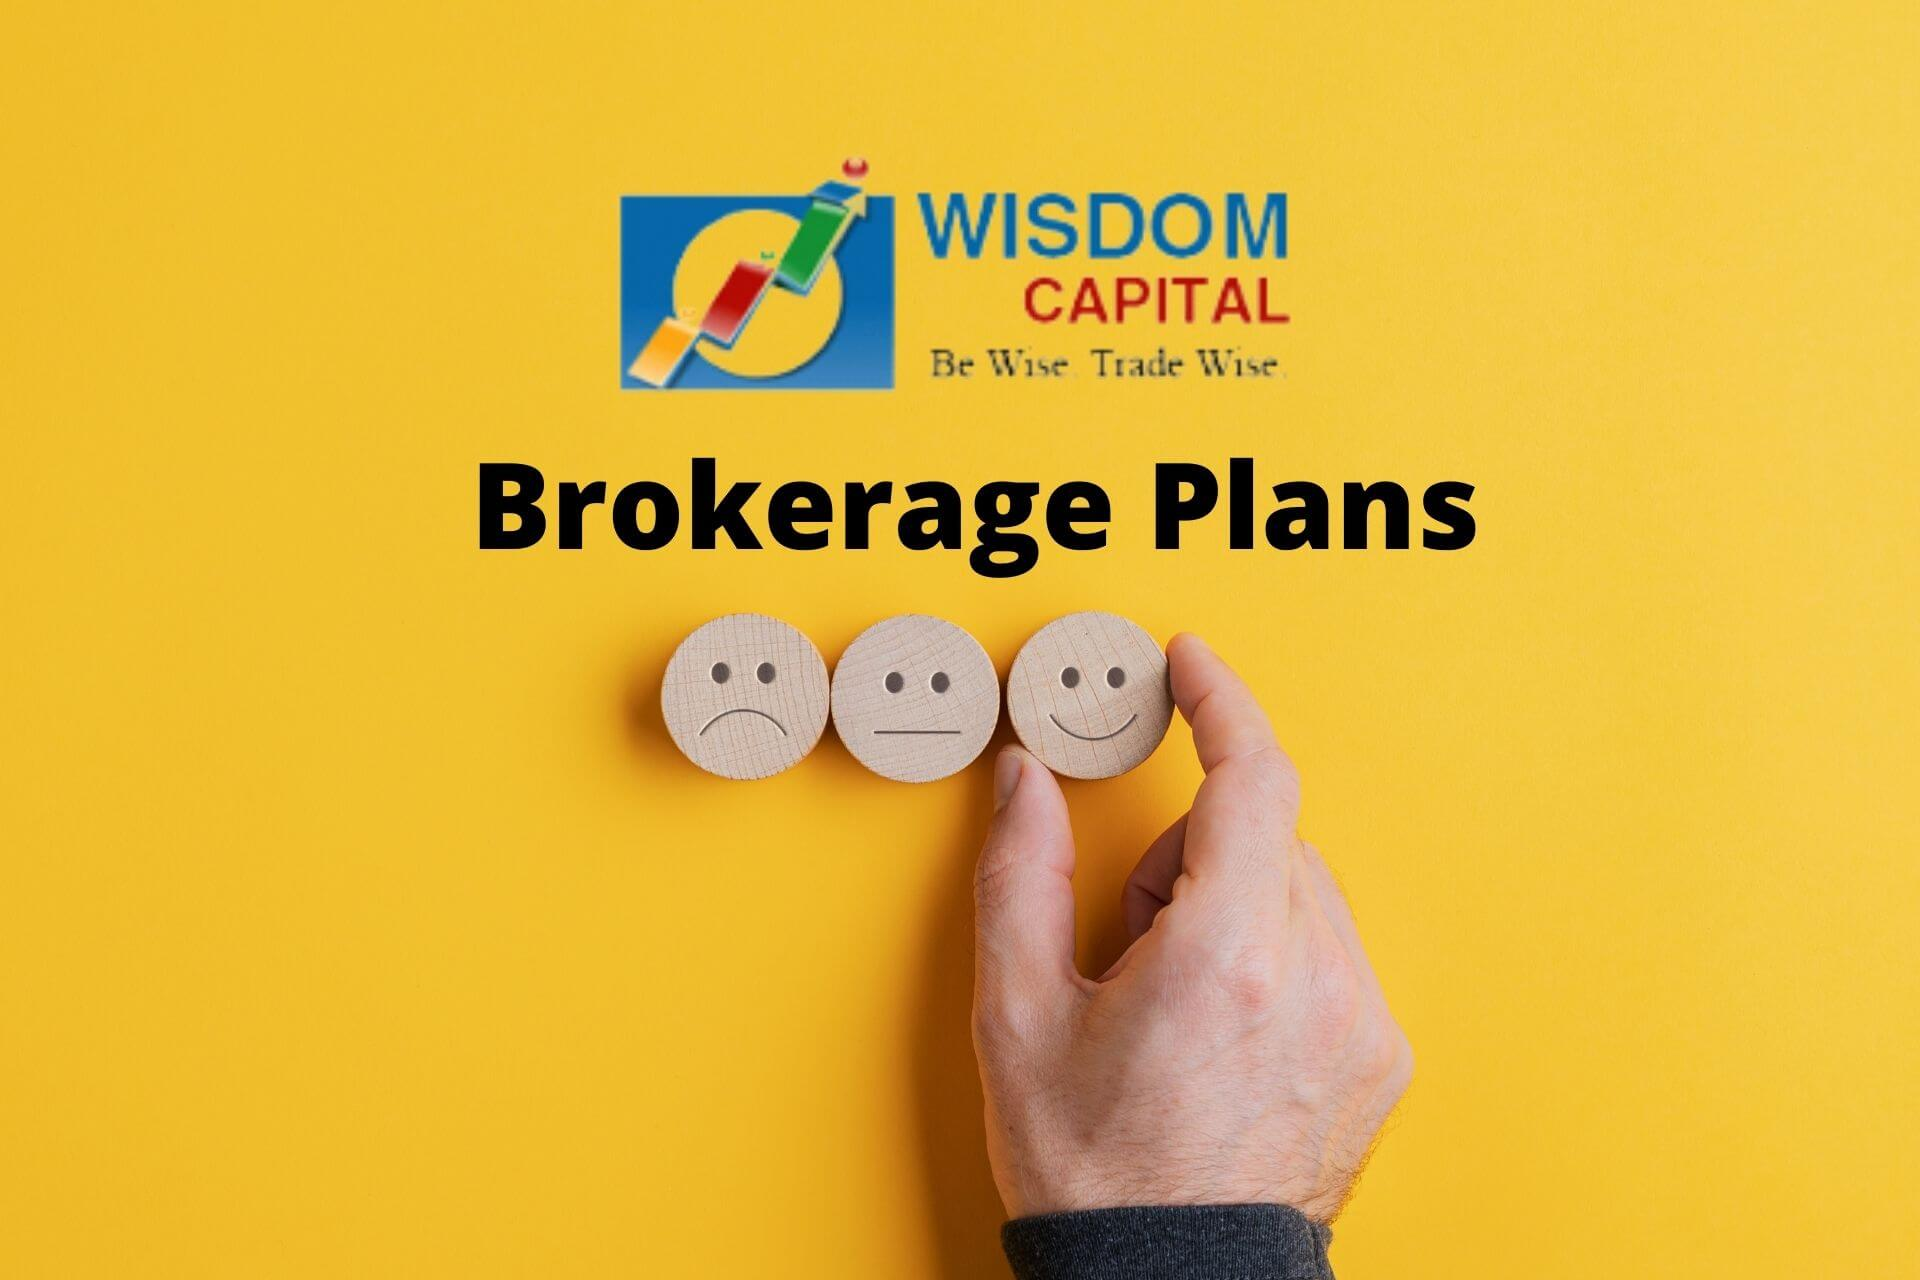 Wisdom Capital Brokerage Plans – Charges, Margin, Benefits & more